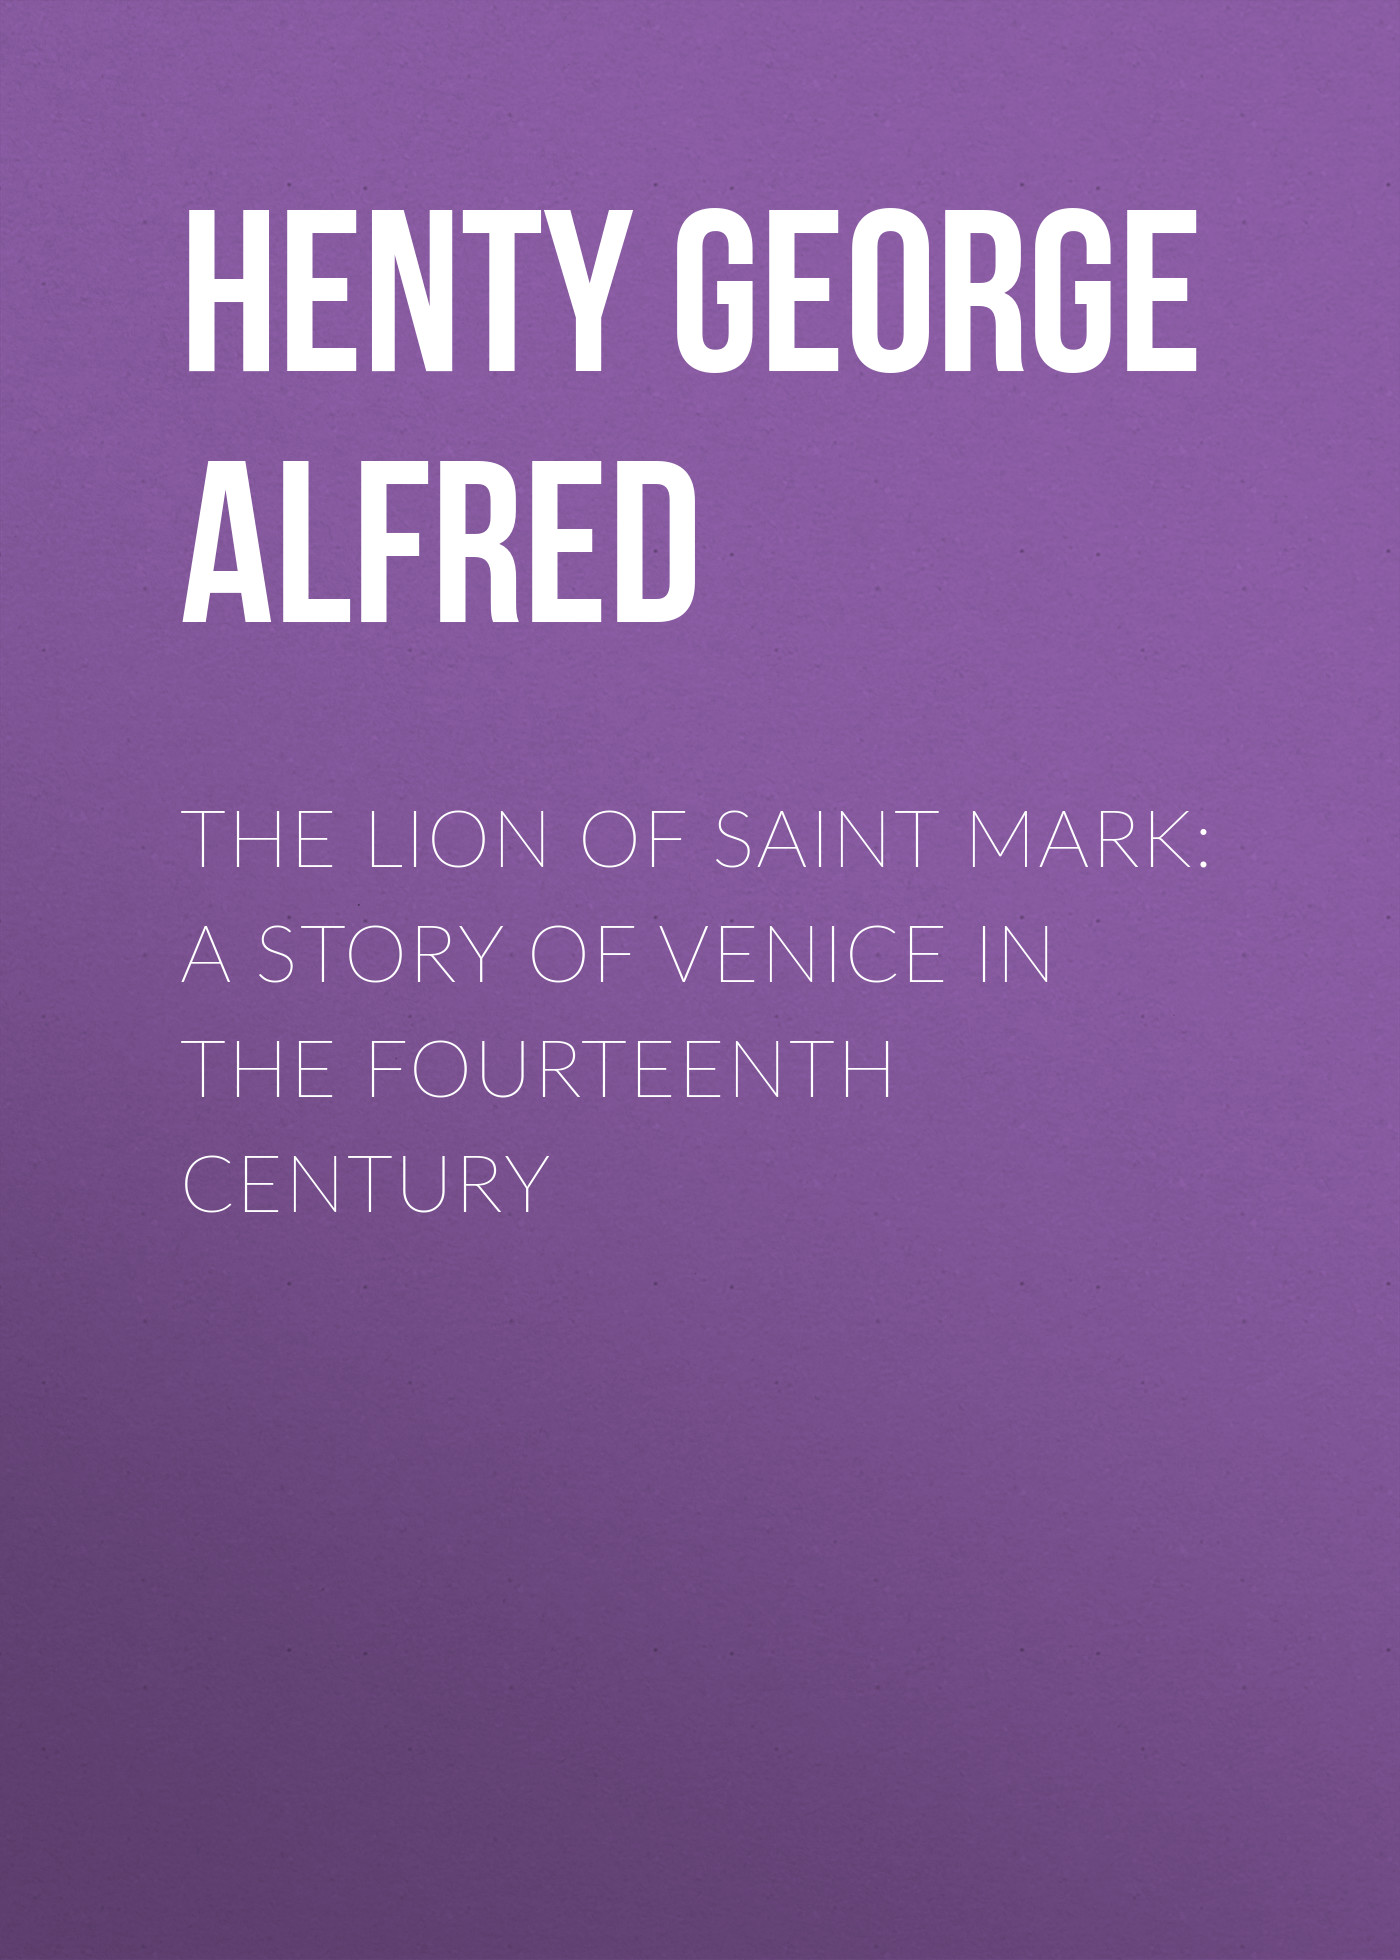 все цены на Henty George Alfred The Lion of Saint Mark: A Story of Venice in the Fourteenth Century онлайн